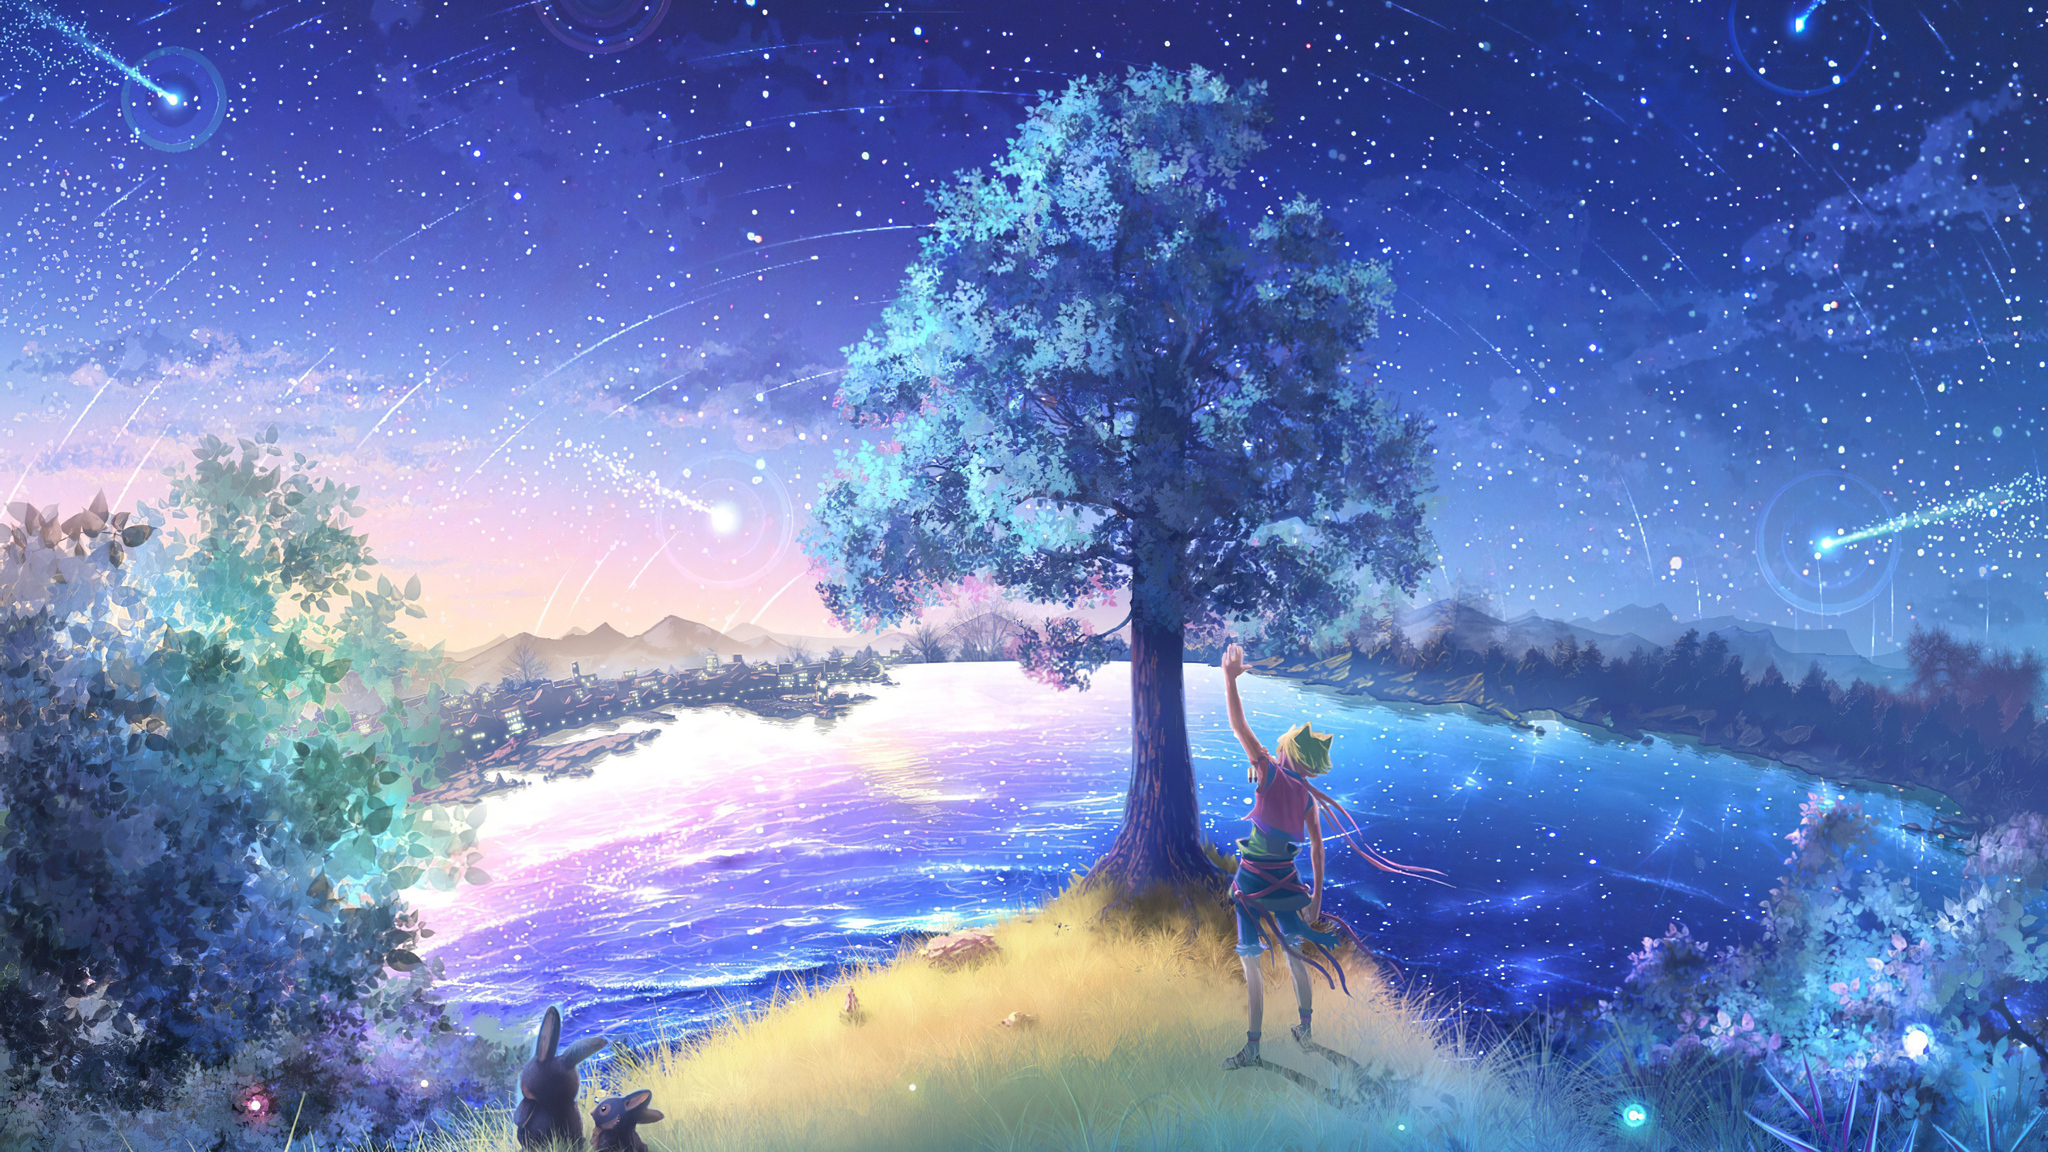 2048x1152 Tree Where Wishes Come True 4k 2048x1152 Resolution Hd 4k Wallpapers Images Backgrounds Photos And Pictures